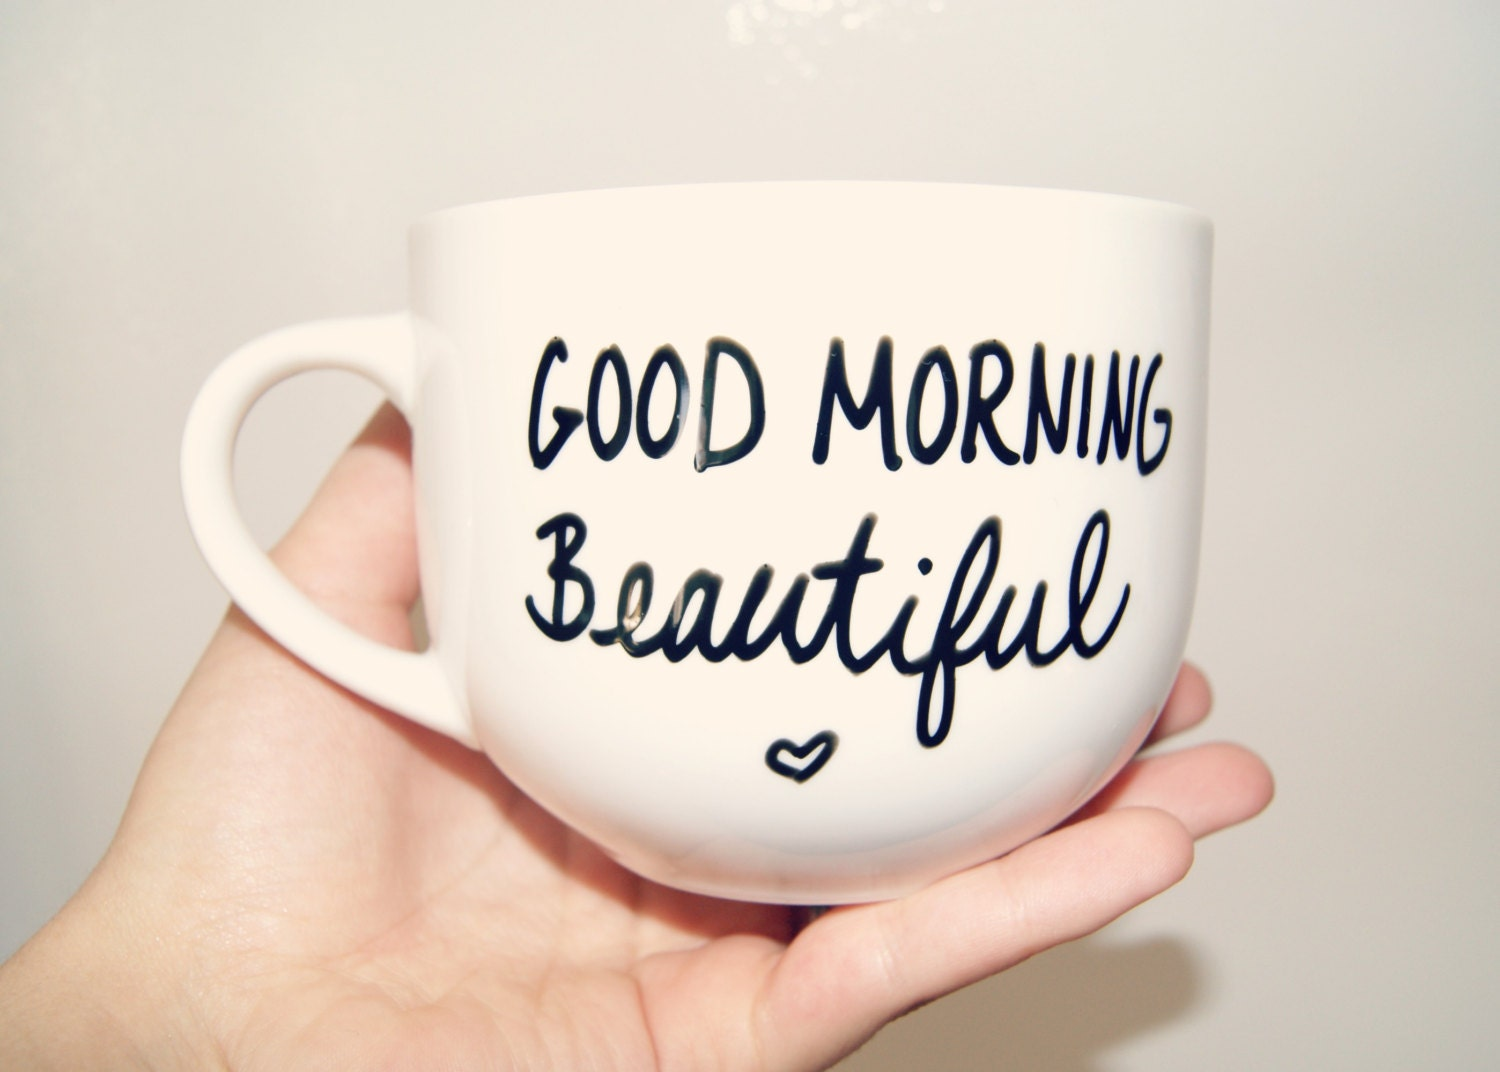 Good Morning Photography Tumblr : Good morning beautiful mug fully